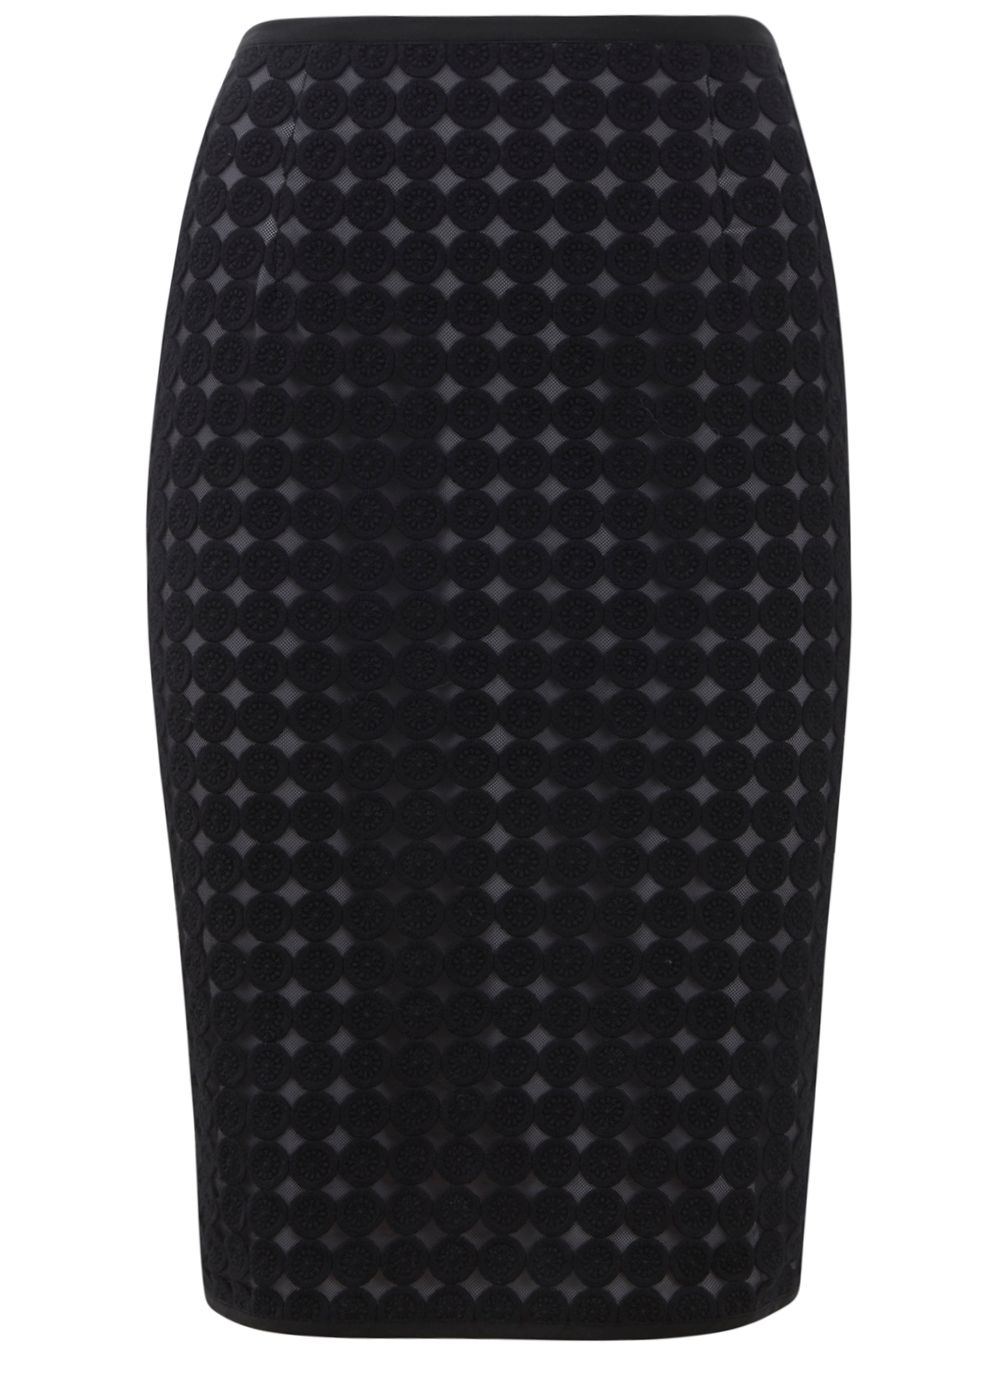 Circle lace pencil skirt